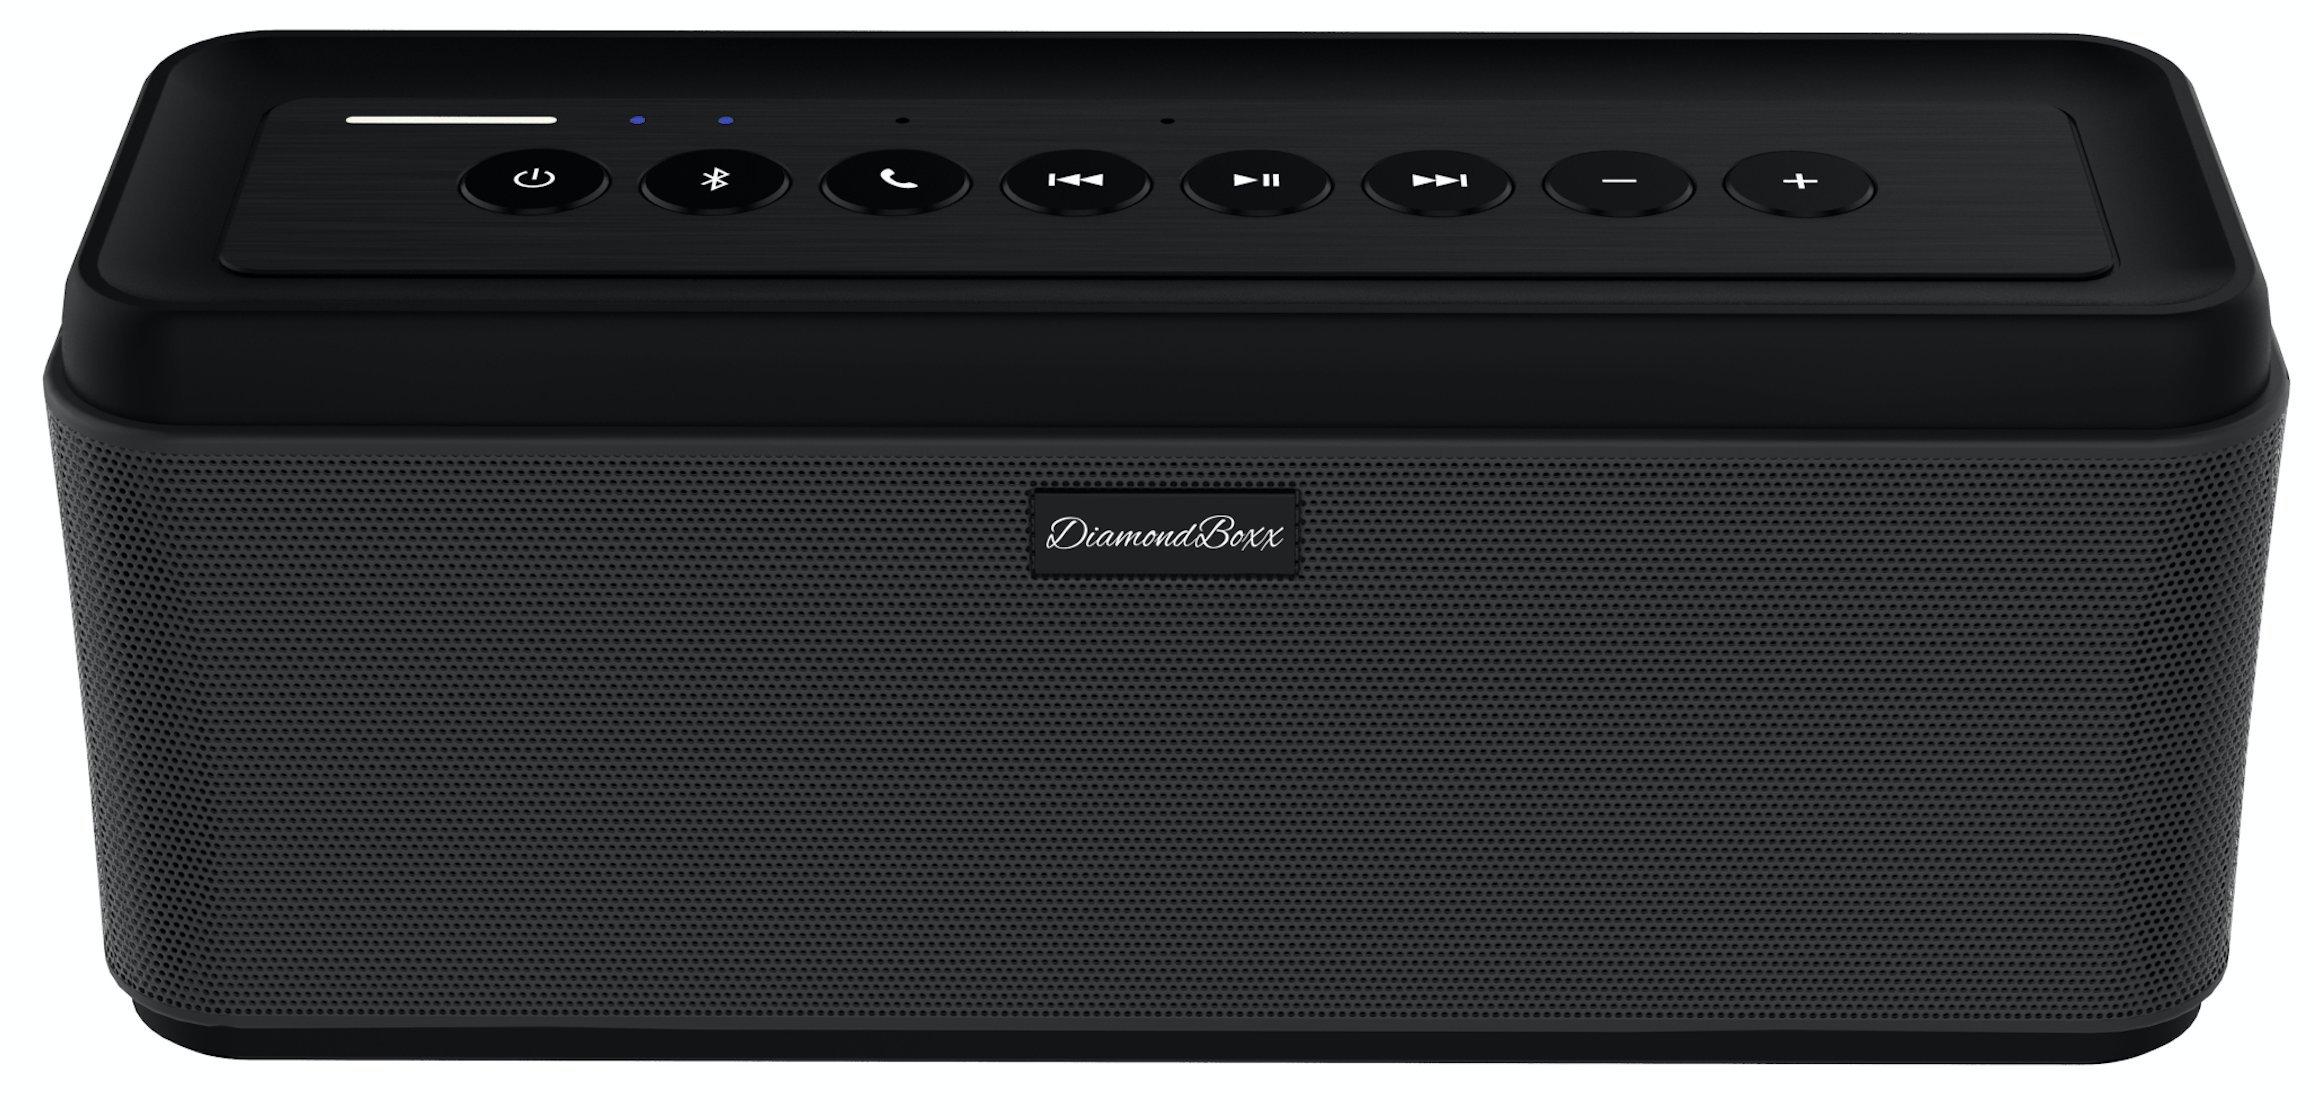 DiamondBoxx Model 40W Loud Small Wireless Portable Speaker, Louder and Better Sounding than anything else it's size